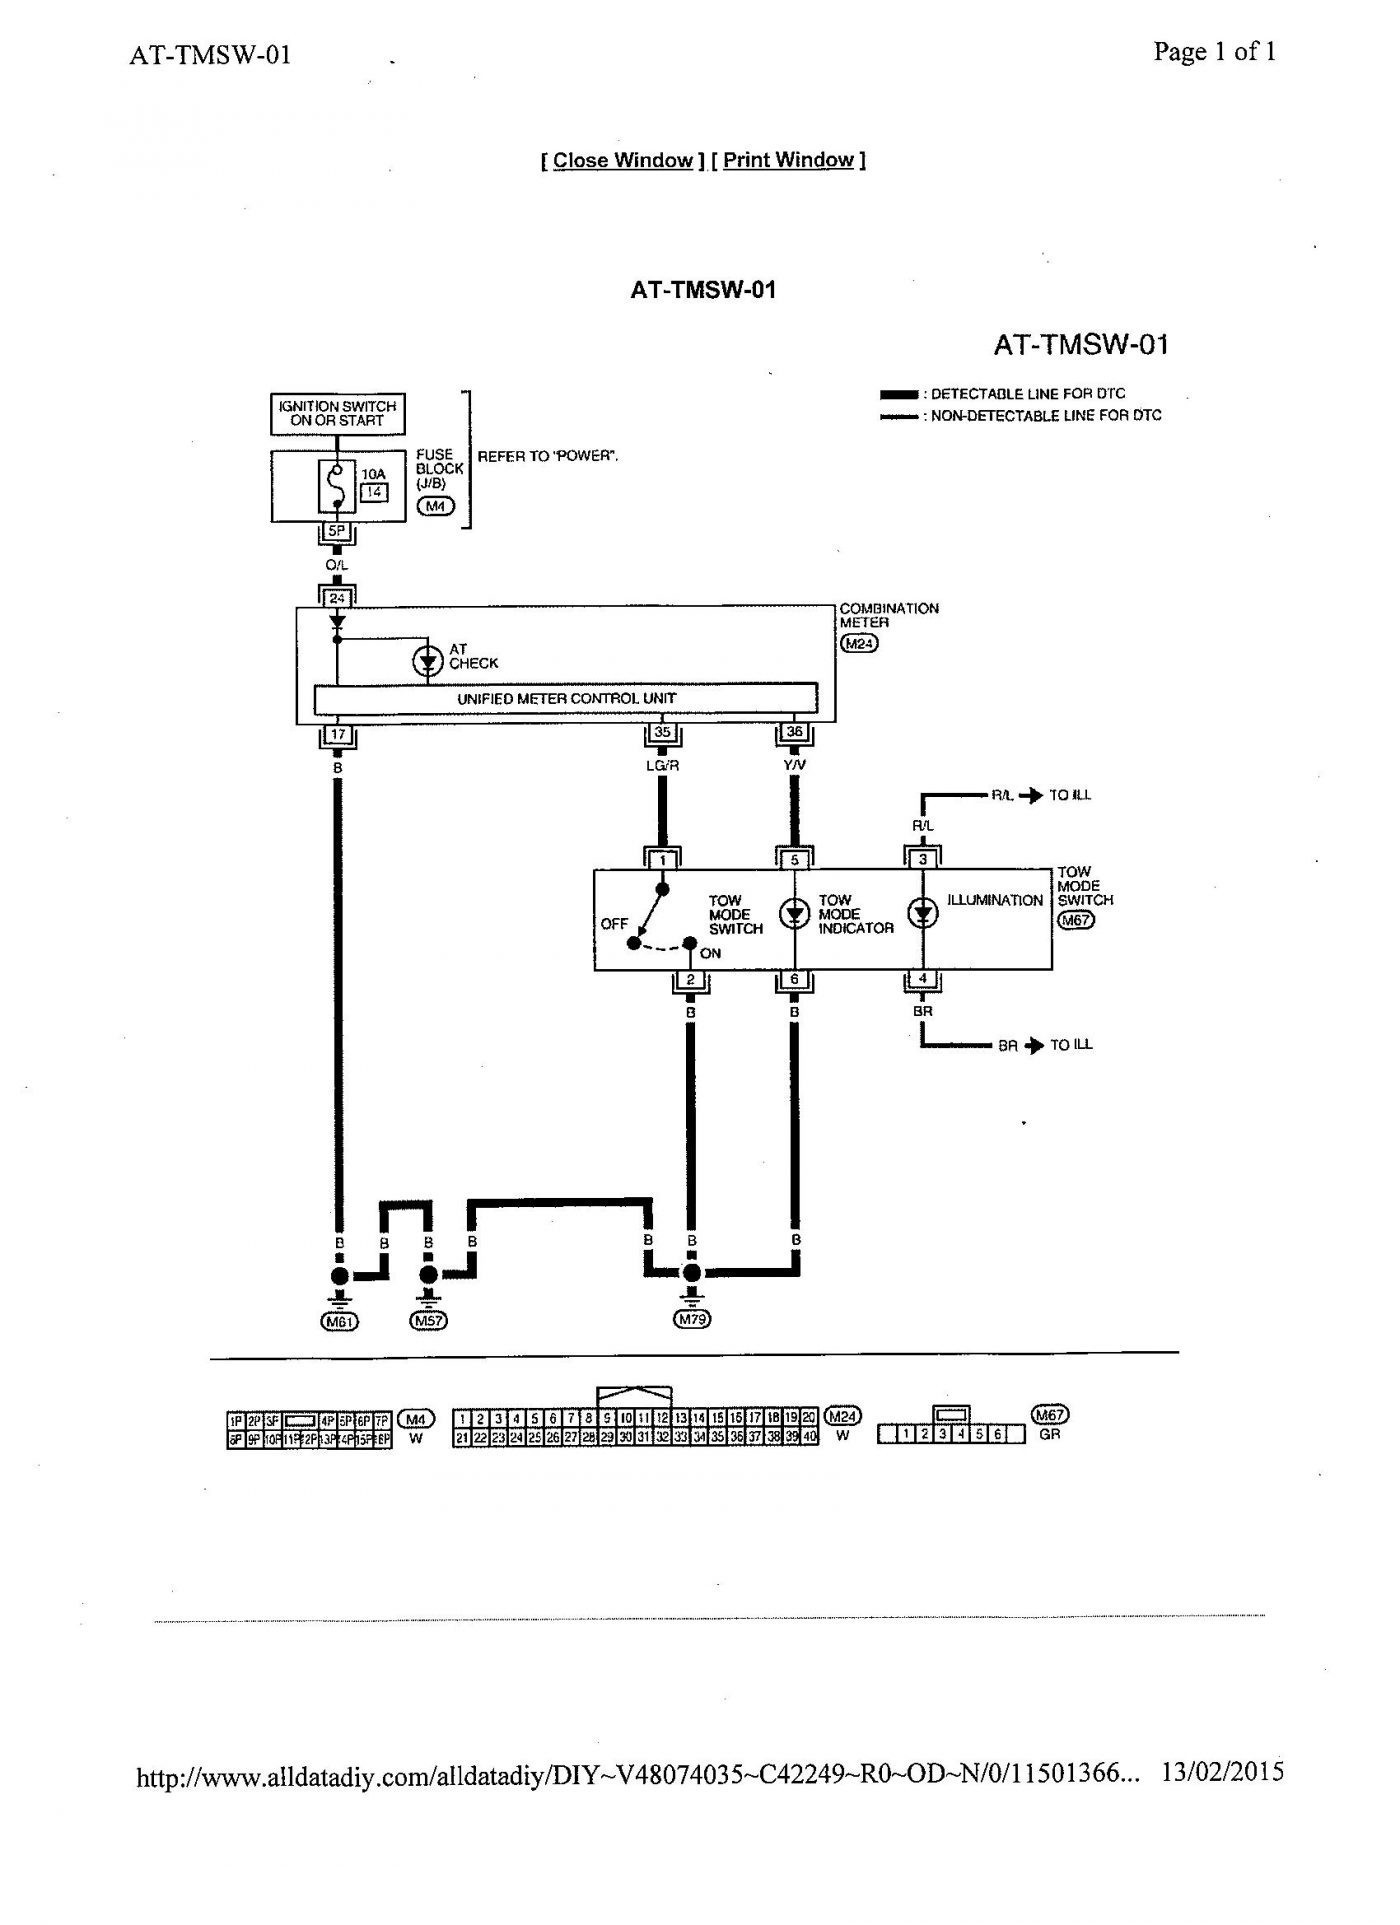 spdt toggle switch wiring diagram Collection Dpdt Switch Wiring Diagram Guitar New Dpdt Switch Wiring